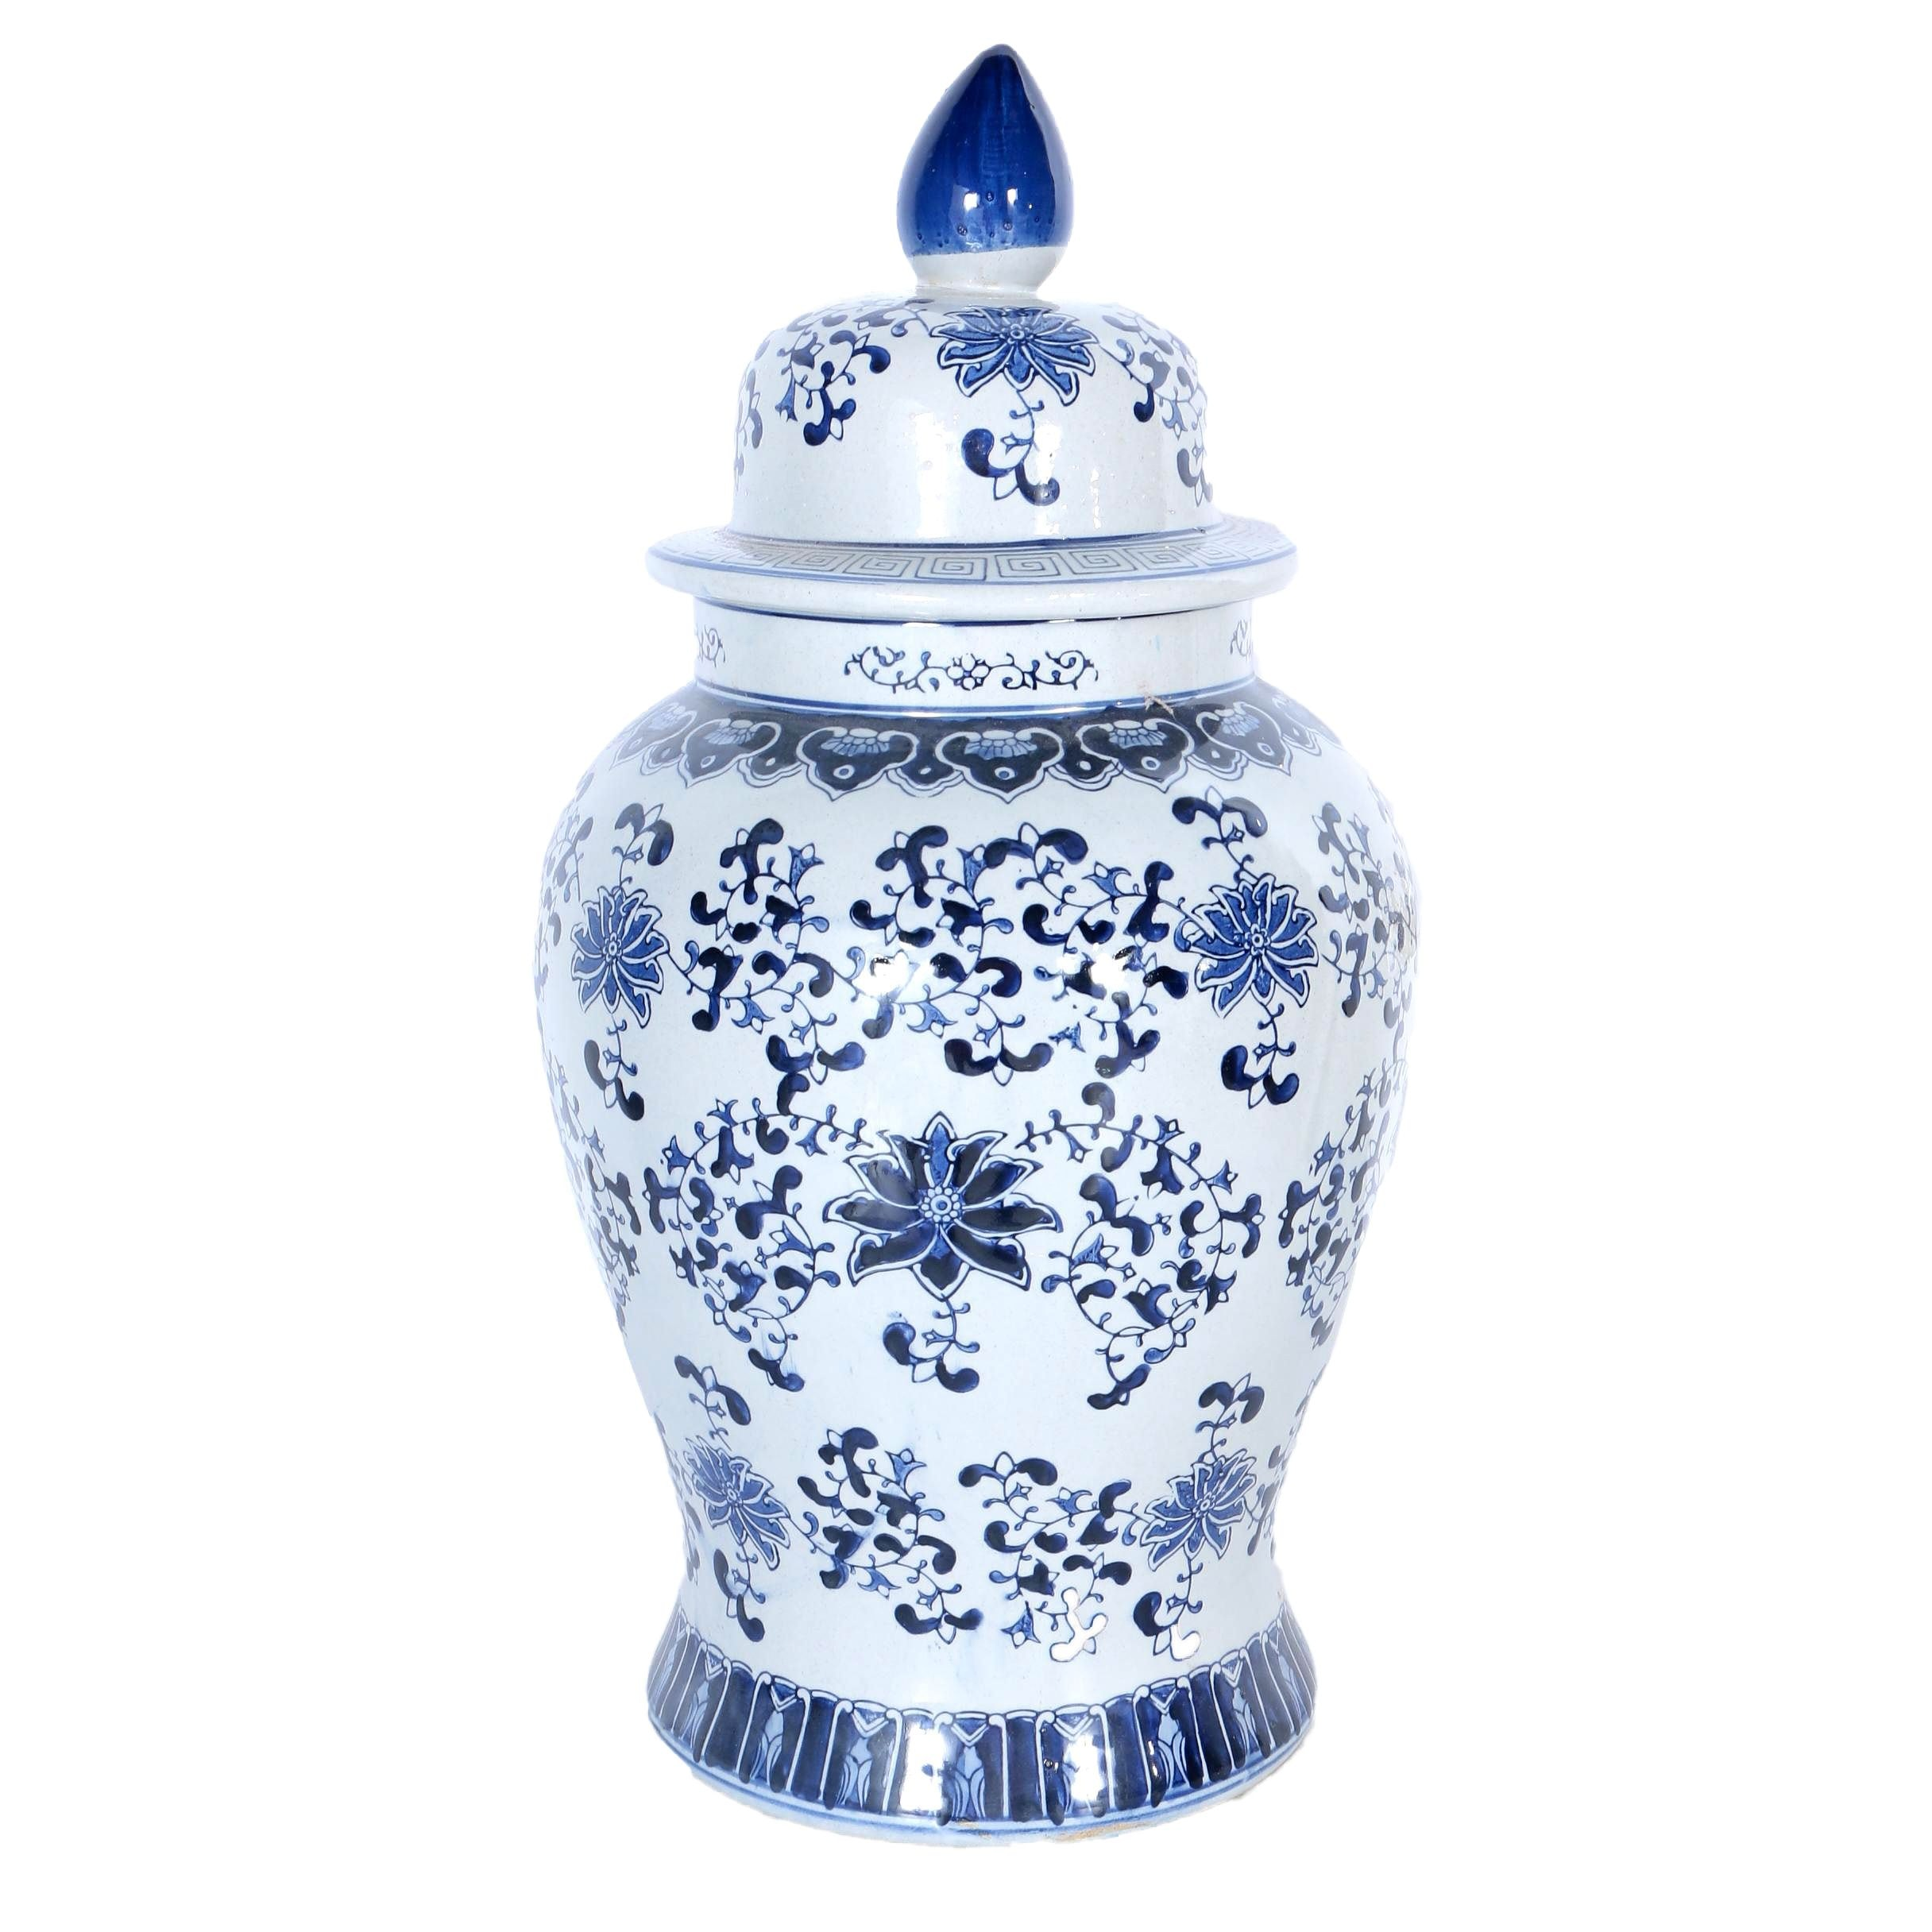 Asian Style Blue and White Ginger Jar